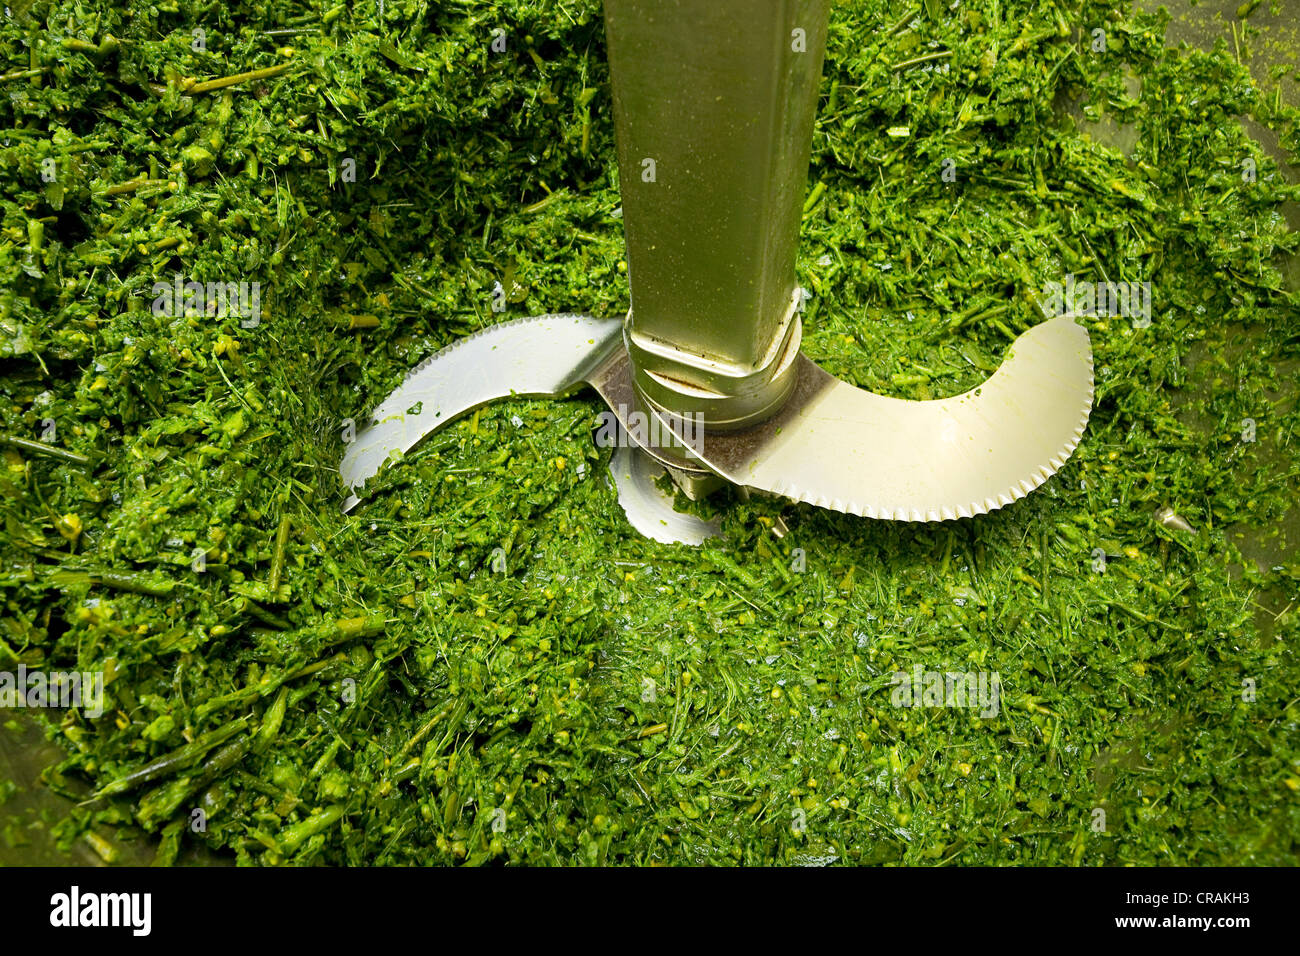 European Mistletoe or Common Mistletoe (Viscum album) being chopped in a blender at a natural remedy company - Stock Image